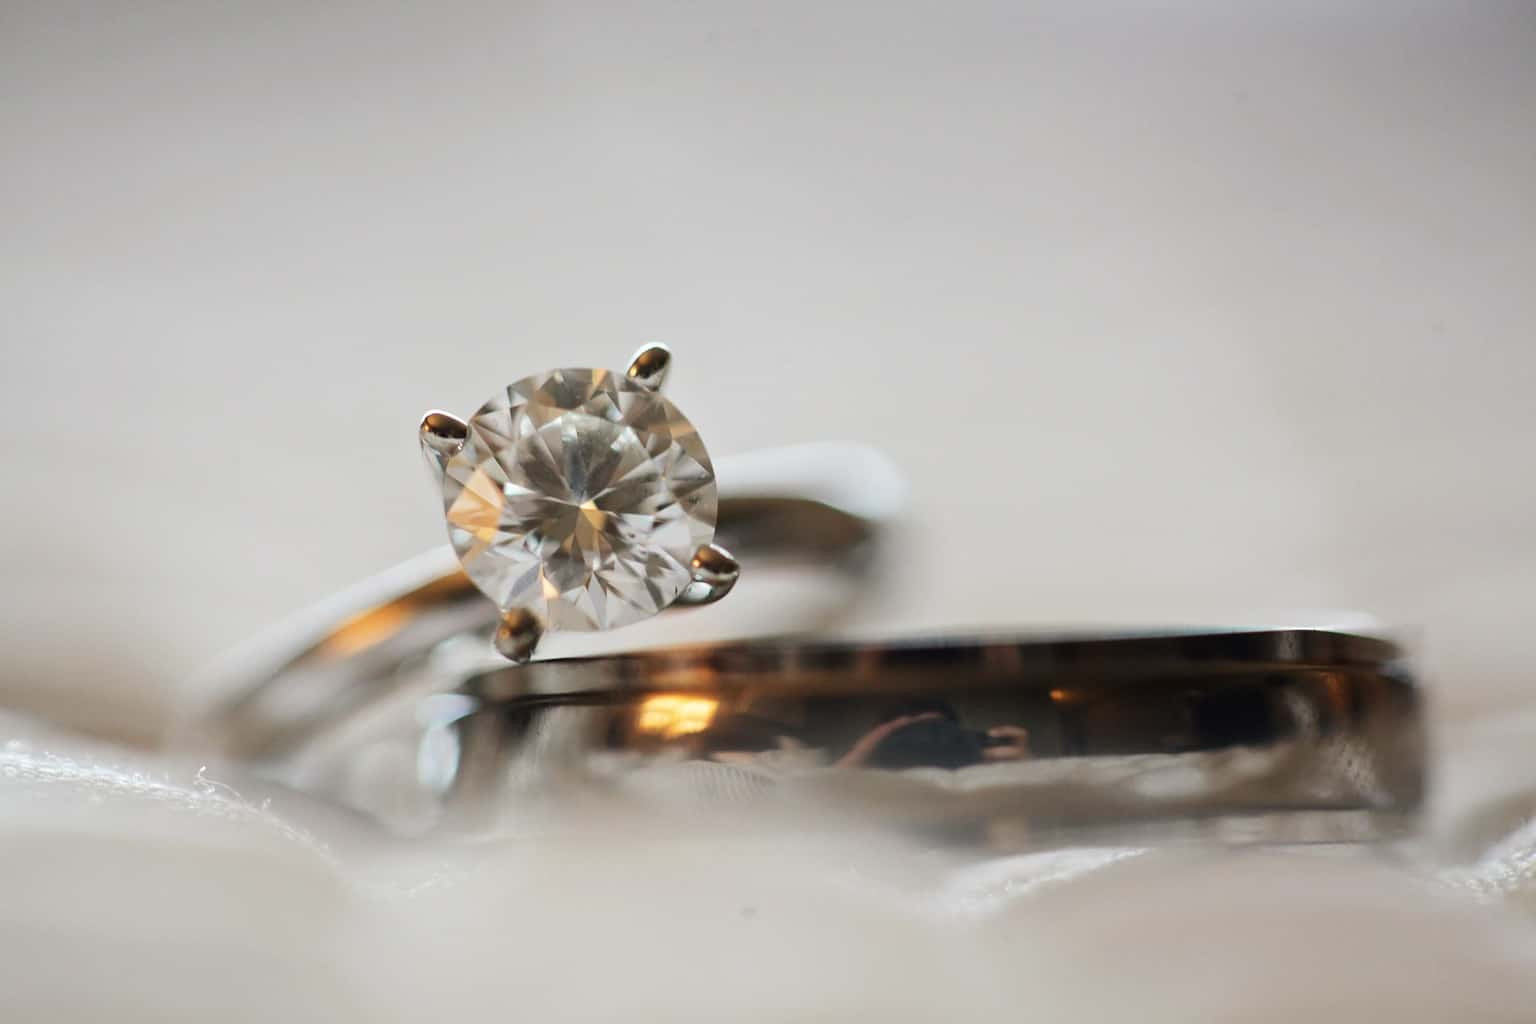 Close Up Photo of Diamond Stud Silver-colored Eternity Ring